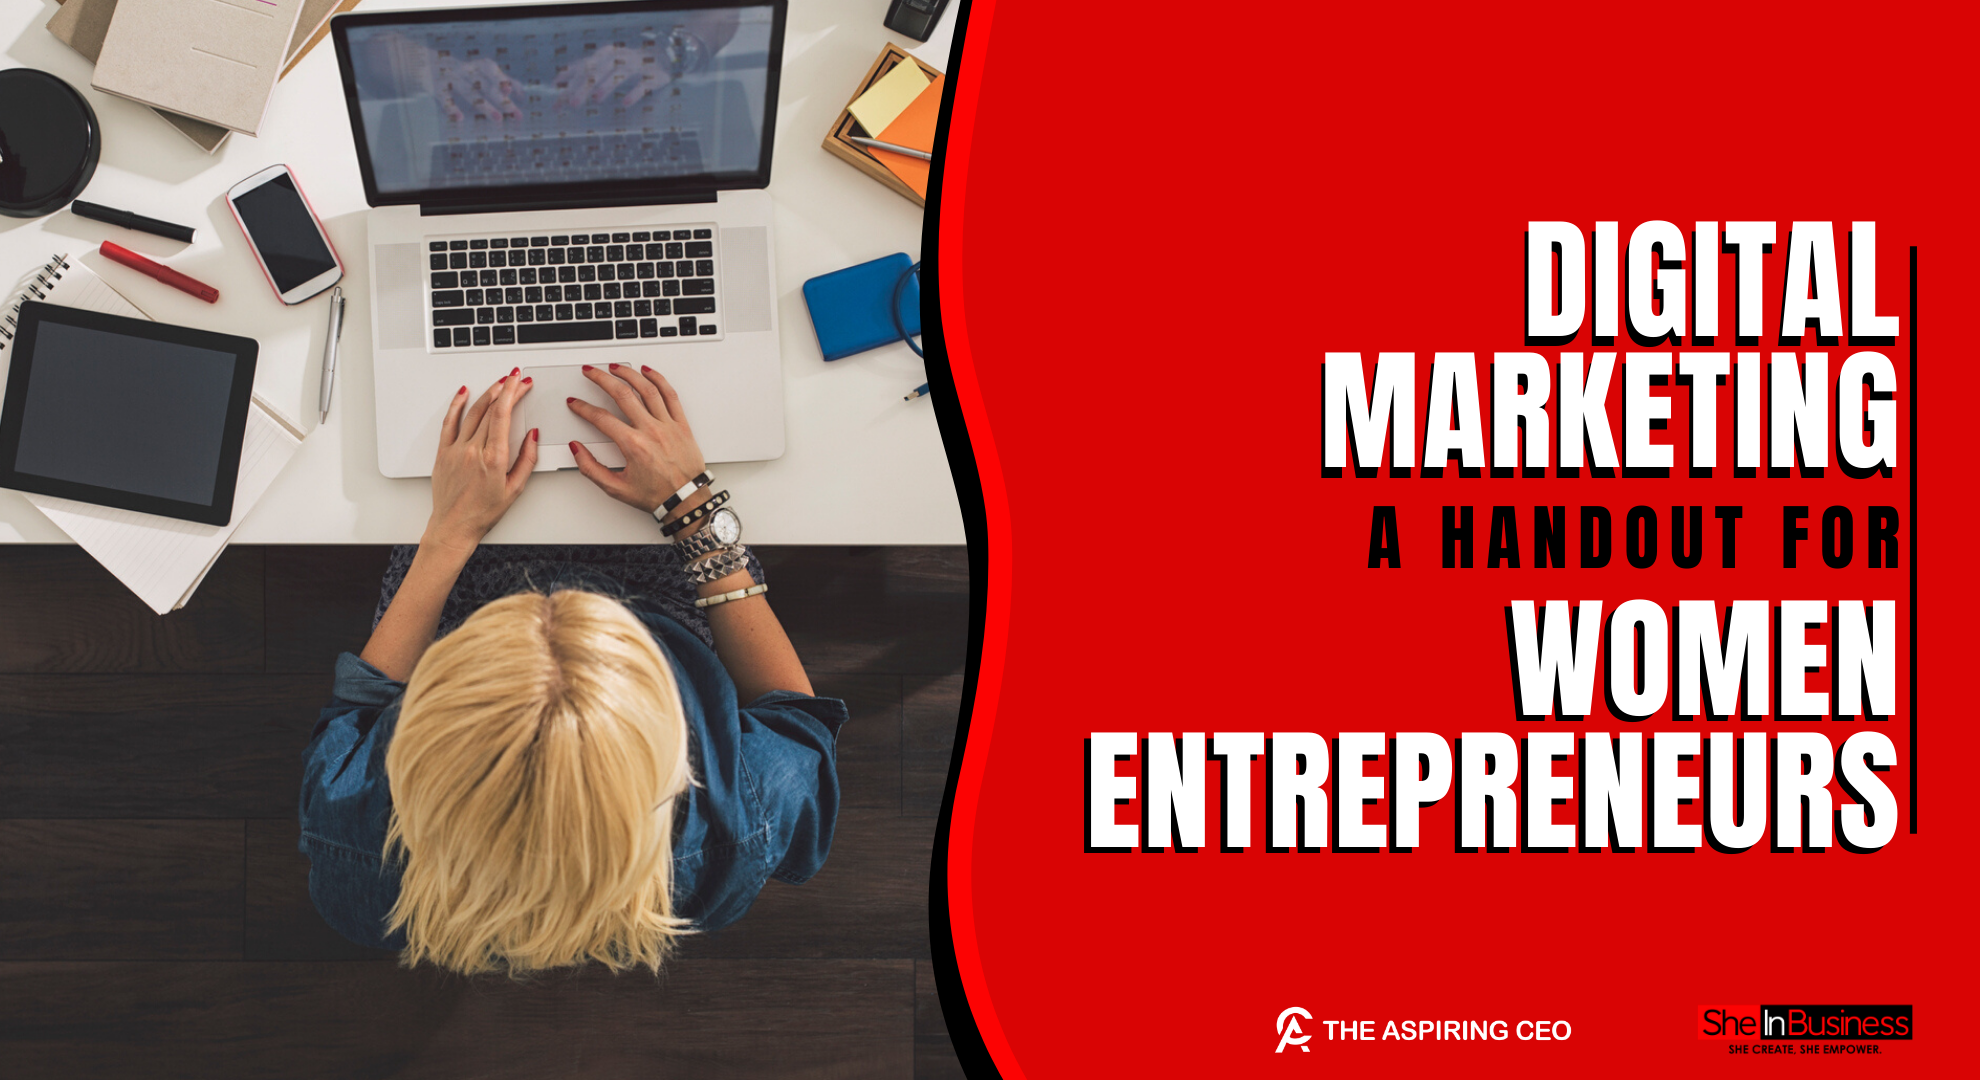 Digital Marketing- A Handout For Women Entrepreneurs